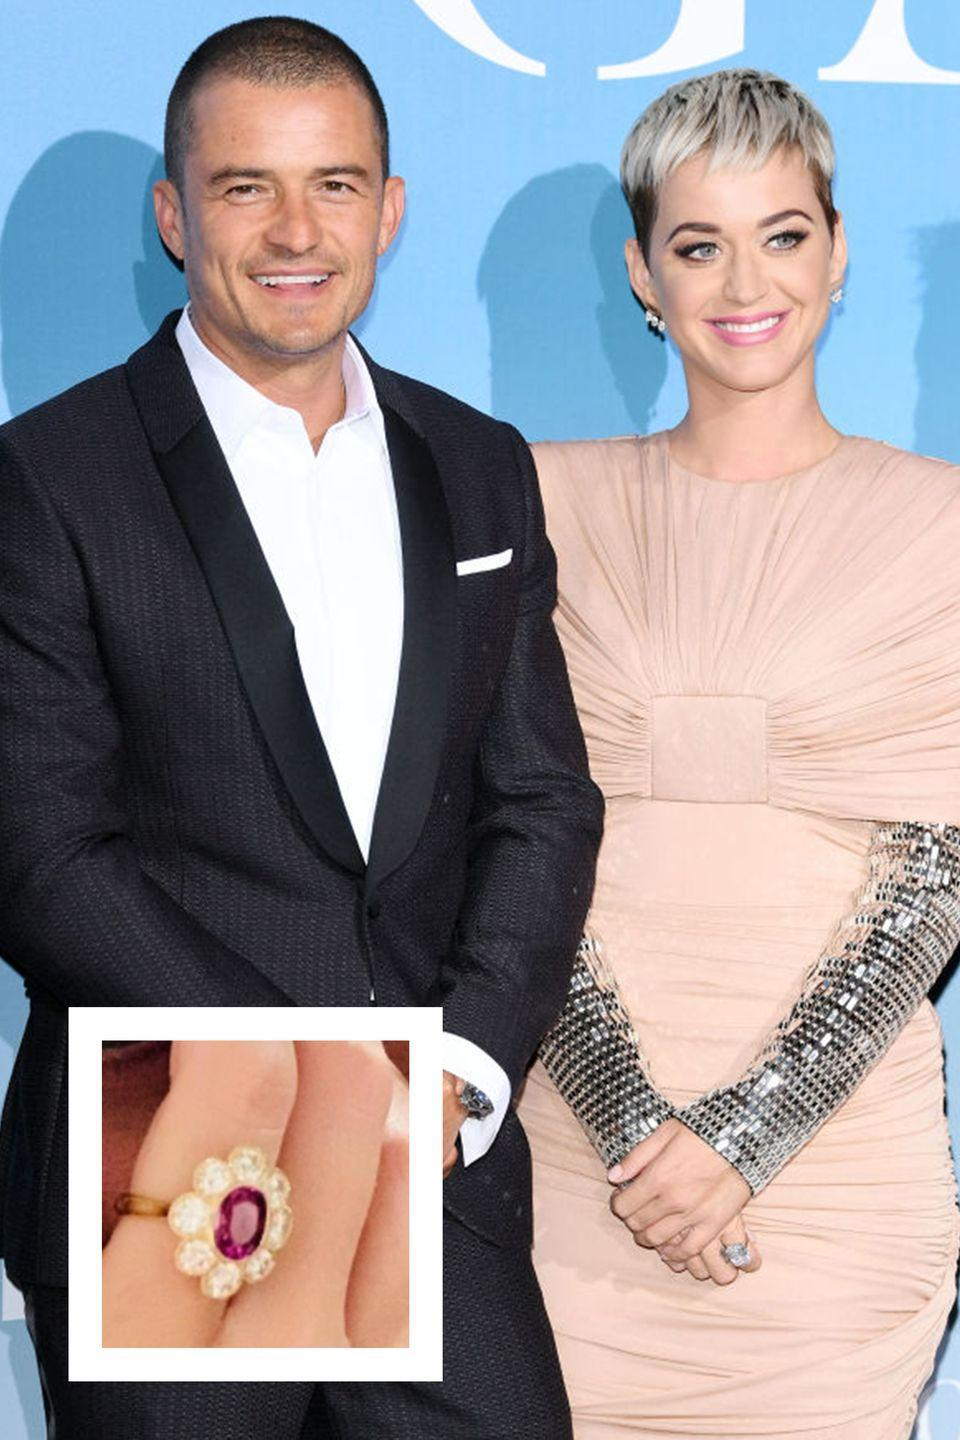 """<p>Katy announced her engagement to Orlando Bloom with a sweet Instagram post on Valentine's Day. The actor proposed <a href=""""https://www.townandcountrymag.com/style/jewelry-and-watches/a26360336/katy-perry-engagement-ring-worth-cost-details/"""" rel=""""nofollow noopener"""" target=""""_blank"""" data-ylk=""""slk:with a one-of-a-kind sparkler"""" class=""""link rapid-noclick-resp"""">with a one-of-a-kind sparkler</a> featuring a ruby or vivid pink diamond center stone weighing between two to two and a half carats in size. The overall cost of the ring may range between $500,000 and $2,000,000 (or even more!). </p>"""